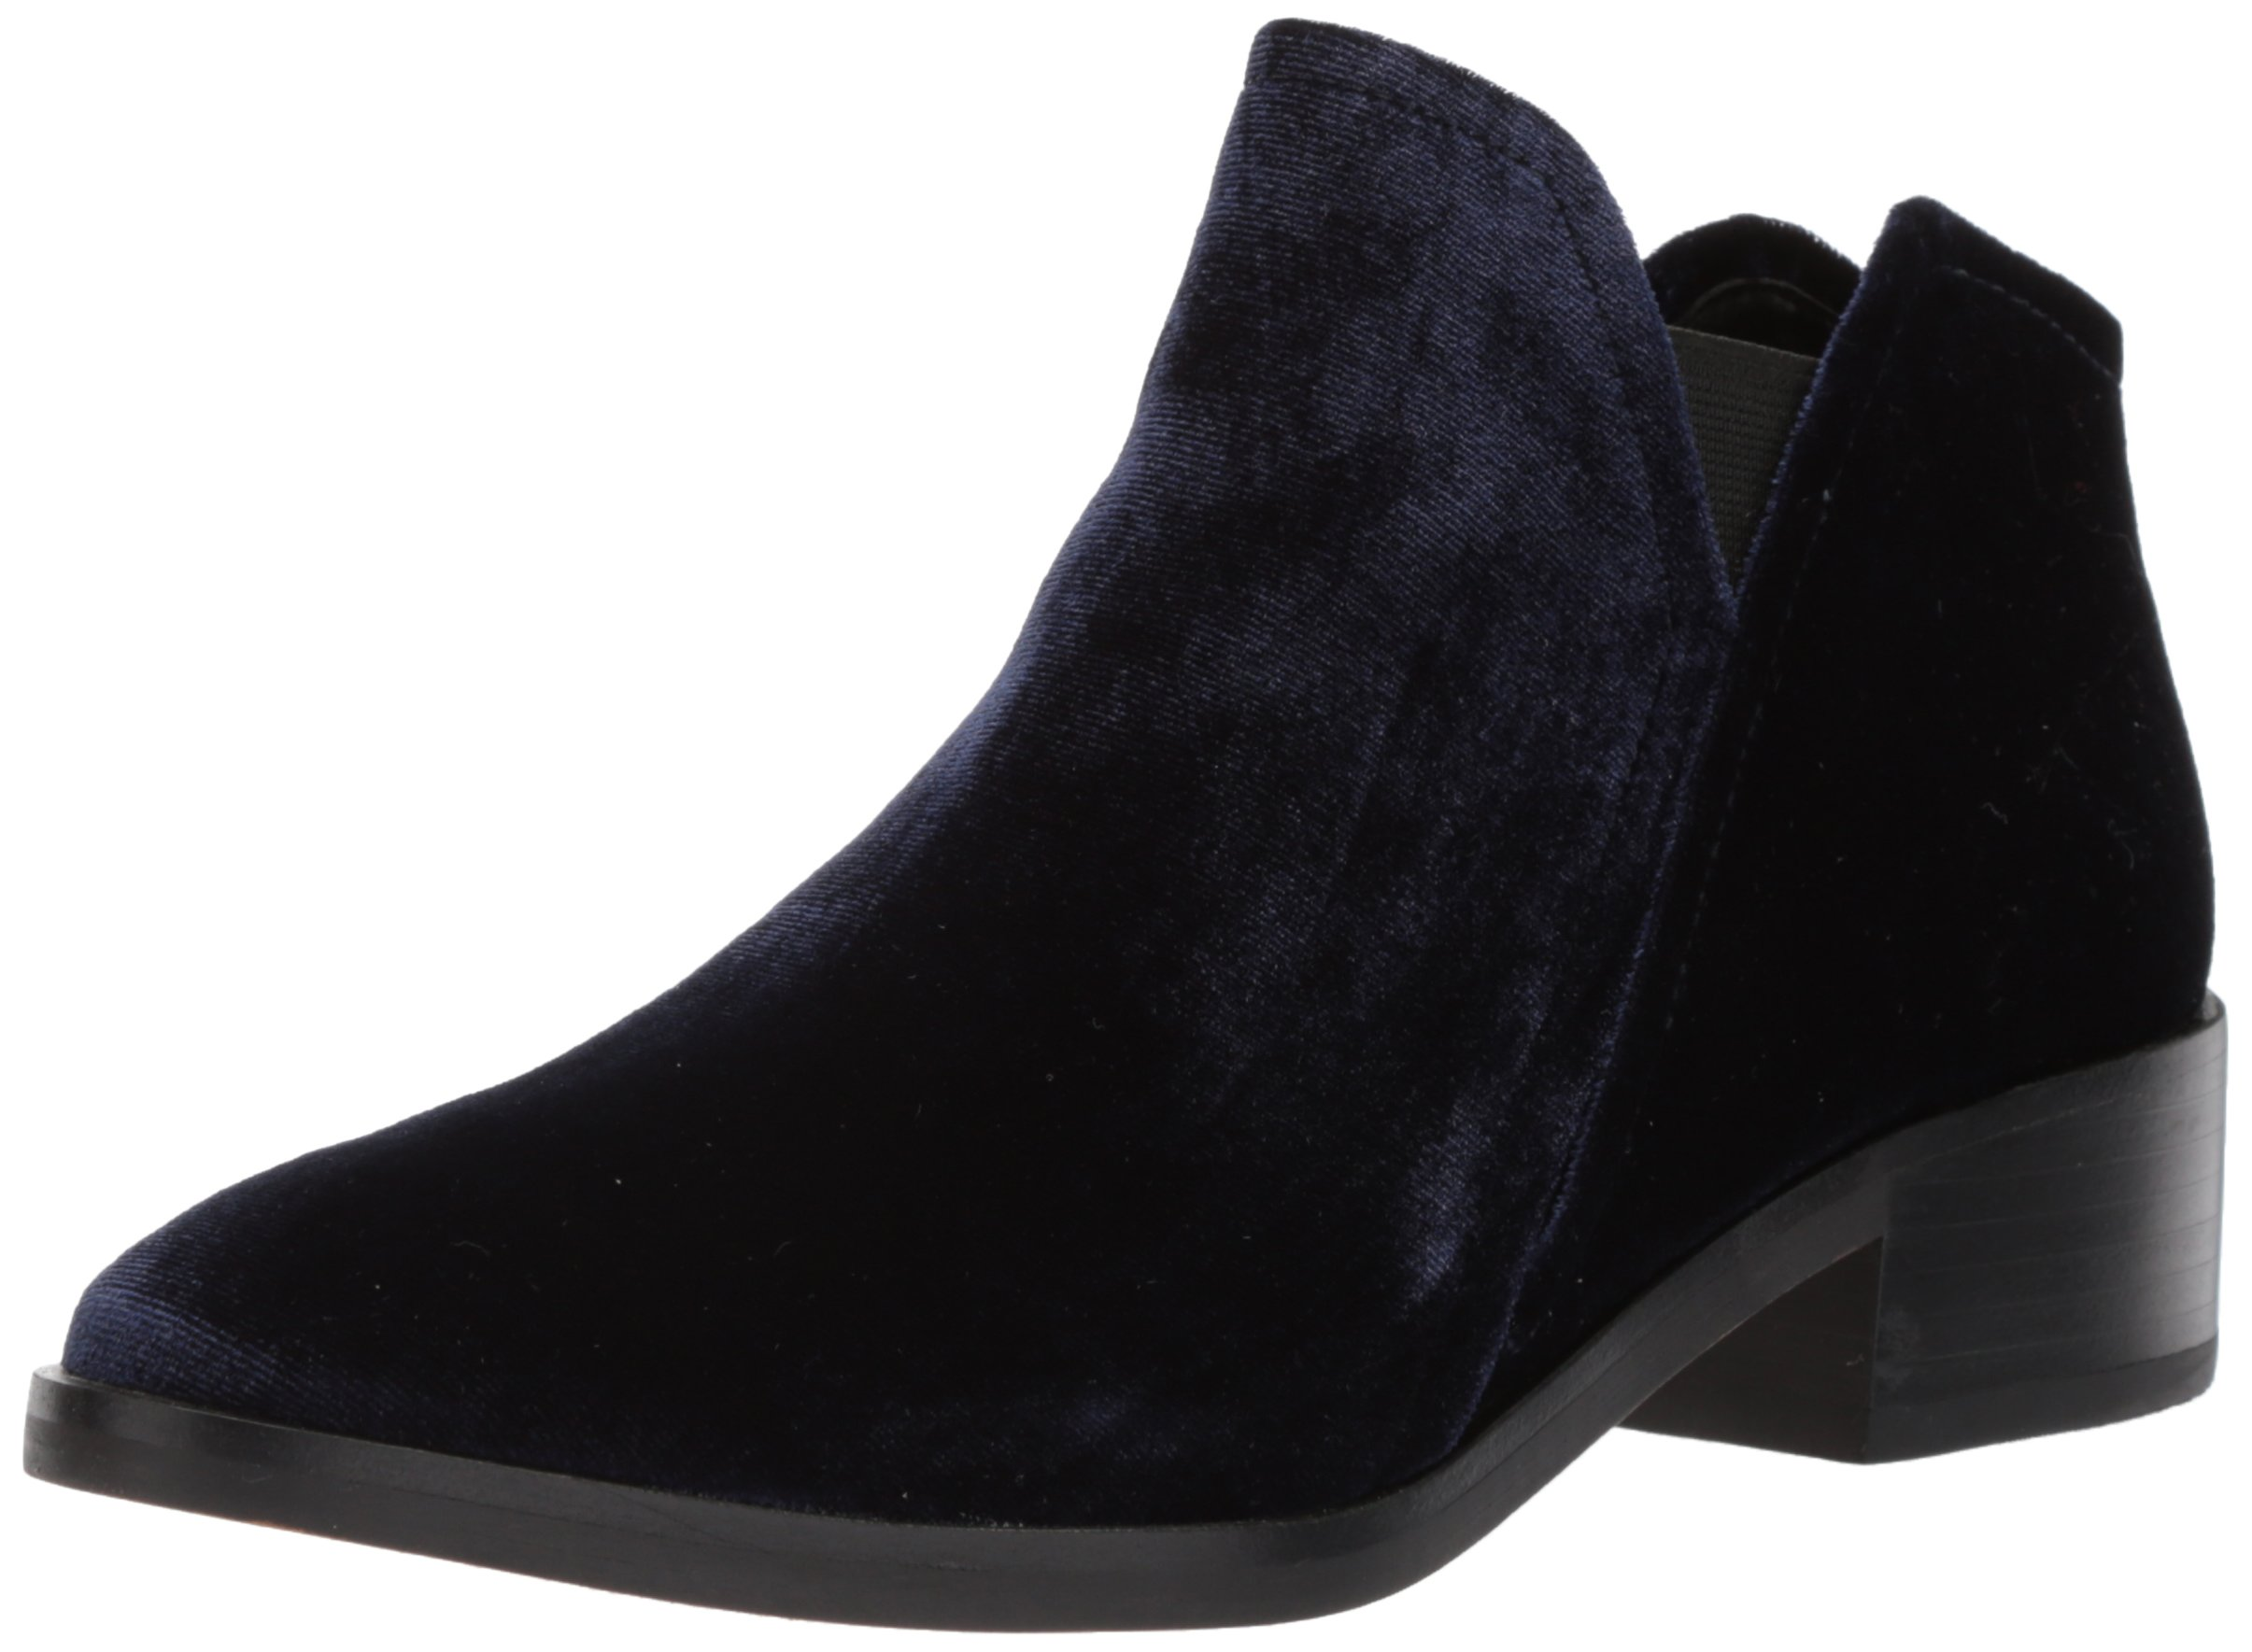 Dolce Vita Women's Tay Ankle Boot, Navy, 8 M US